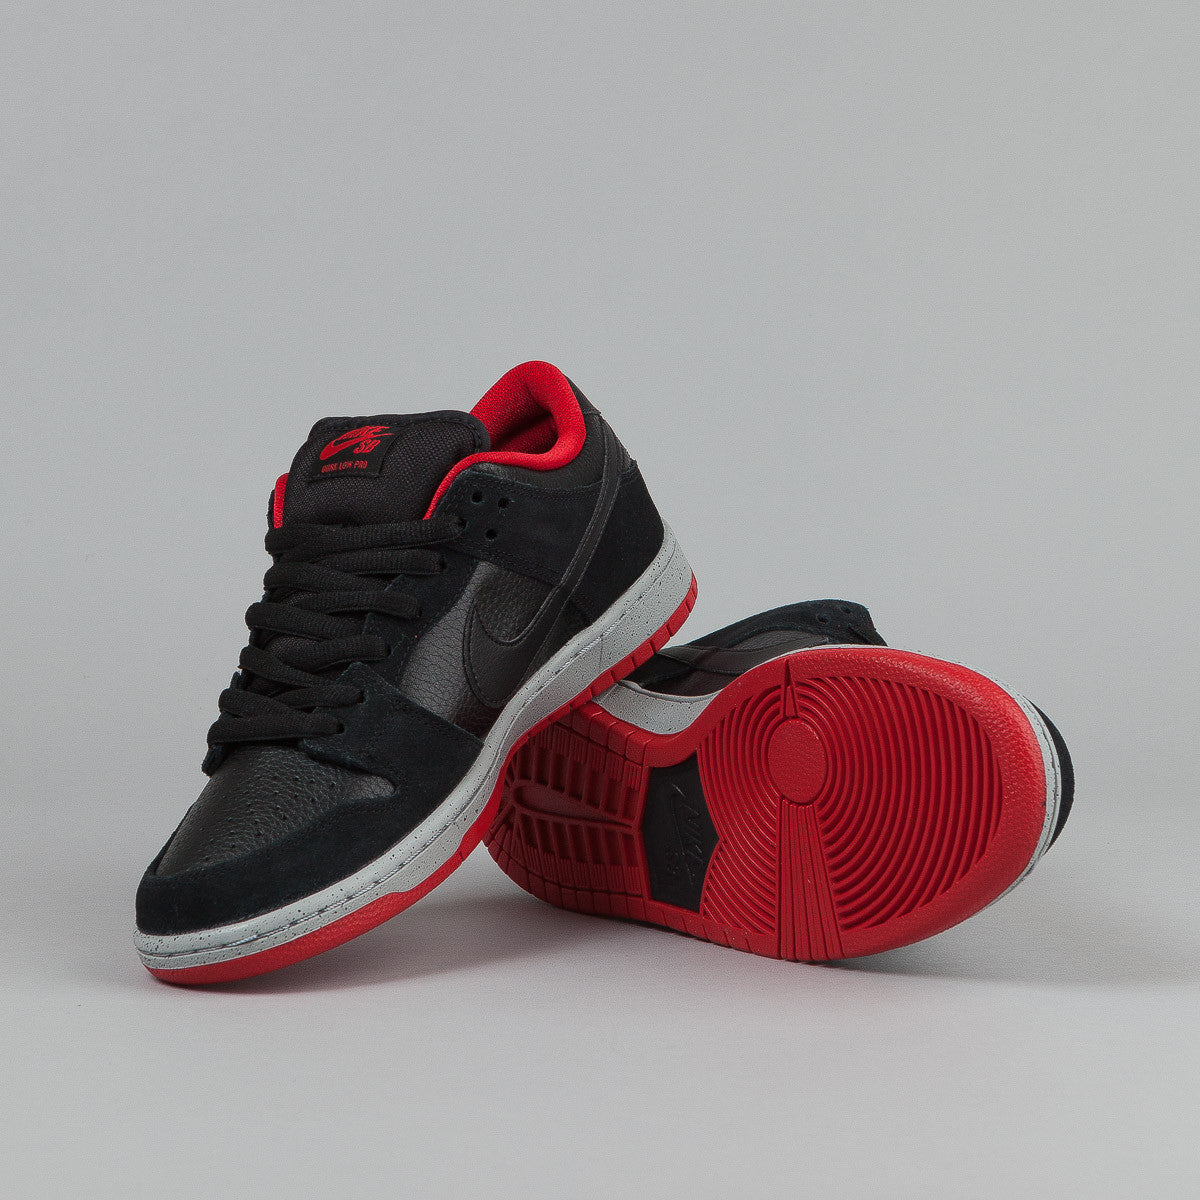 Nike SB Dunk Low Pro Shoes - Black / Black / Wolf Grey / University Red